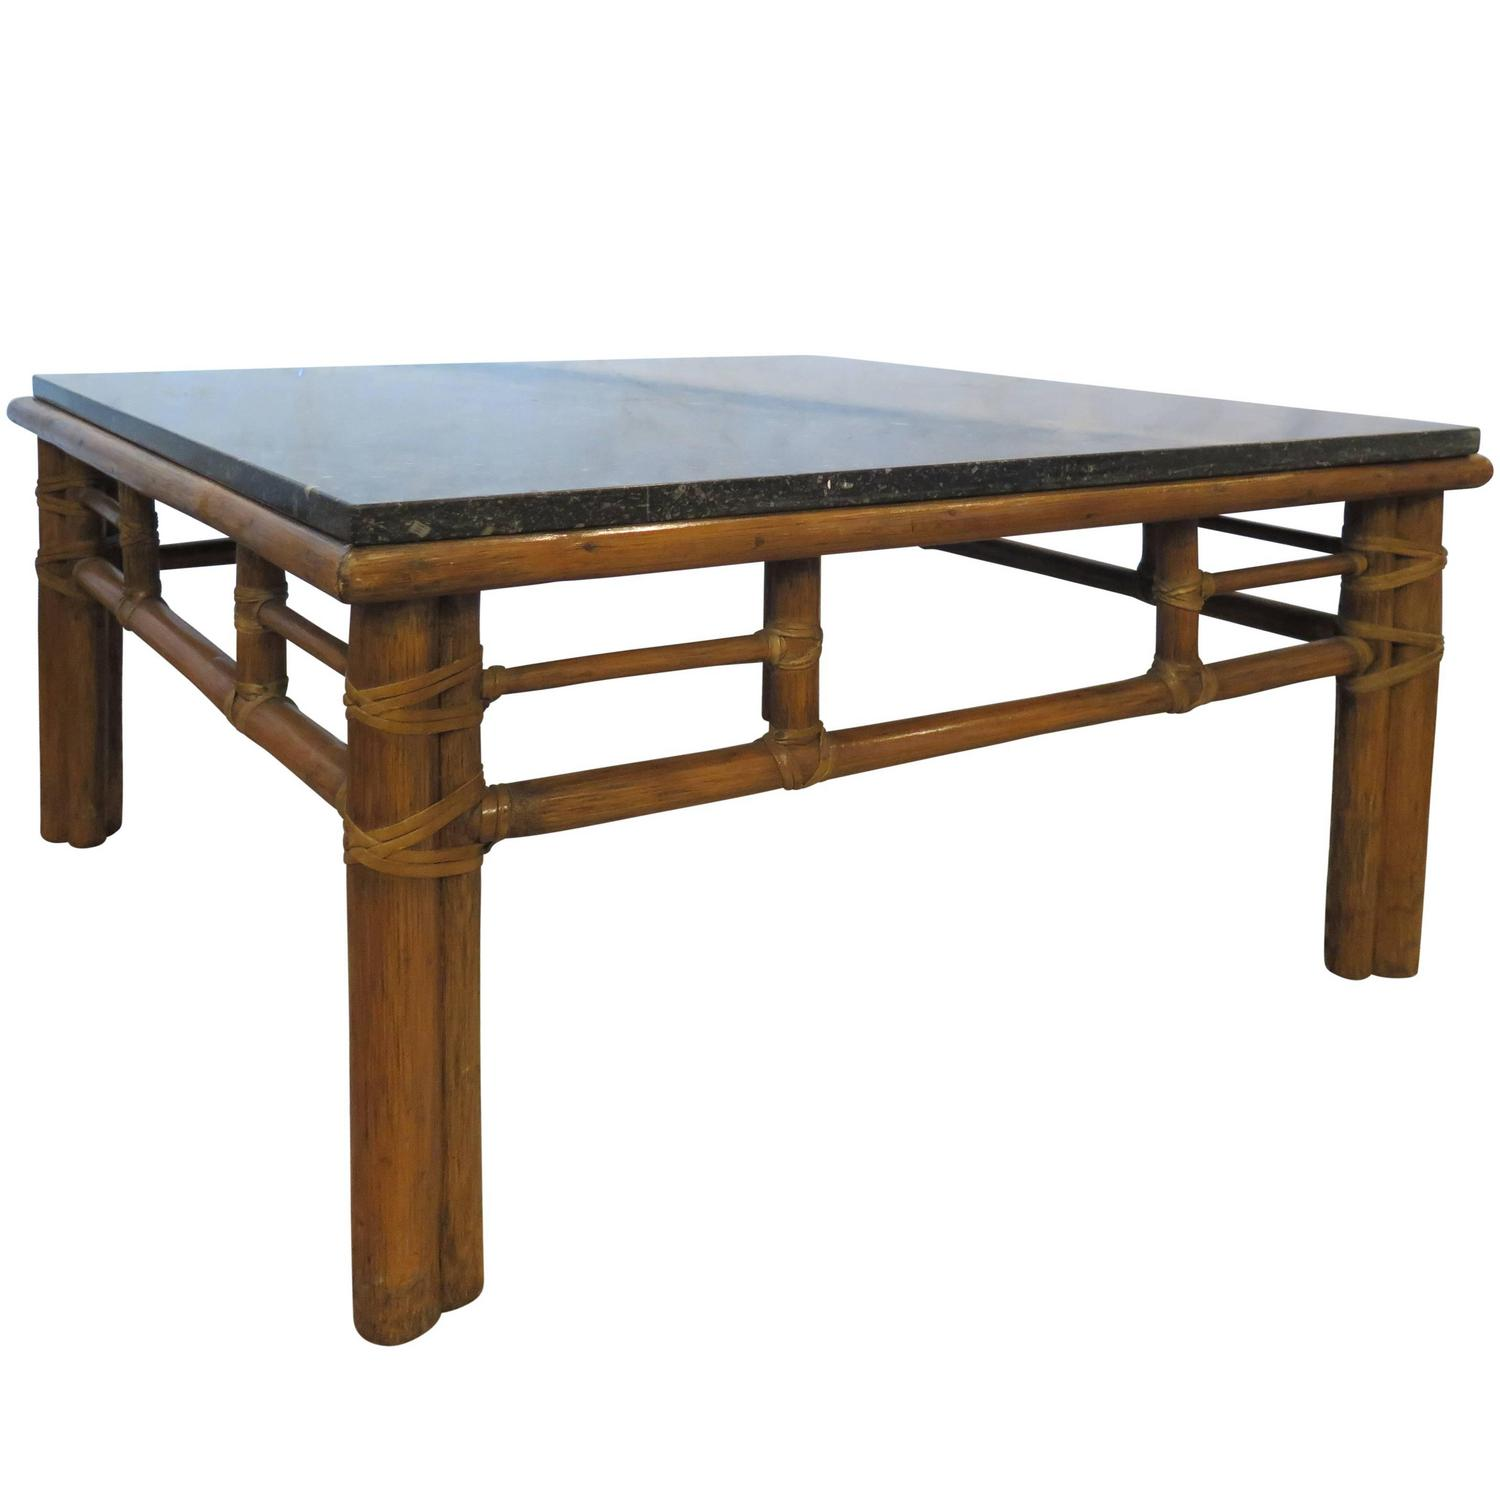 Mcguire Coffee Table With Black Marble Top For Sale At 1stdibs: stone coffee table top